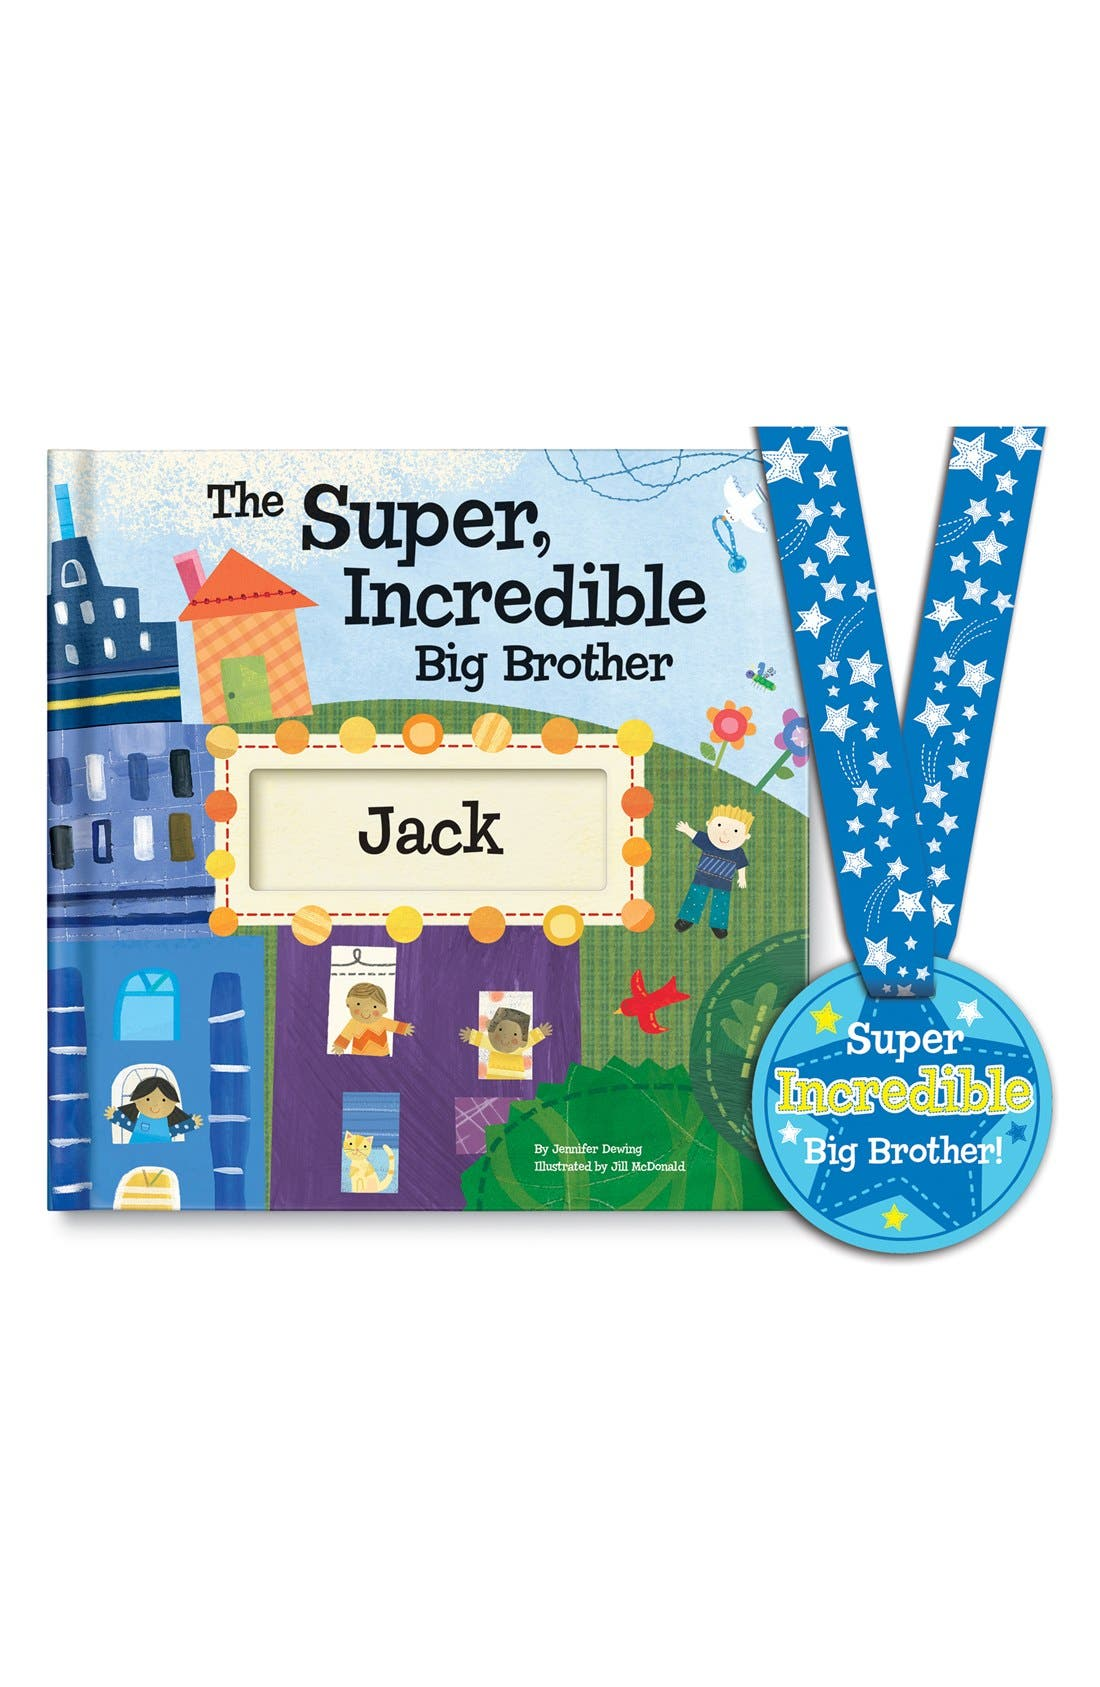 'The Super, Incredible Big Brother' Personalized Hardcover Book & Medal,                             Main thumbnail 1, color,                             BLUE